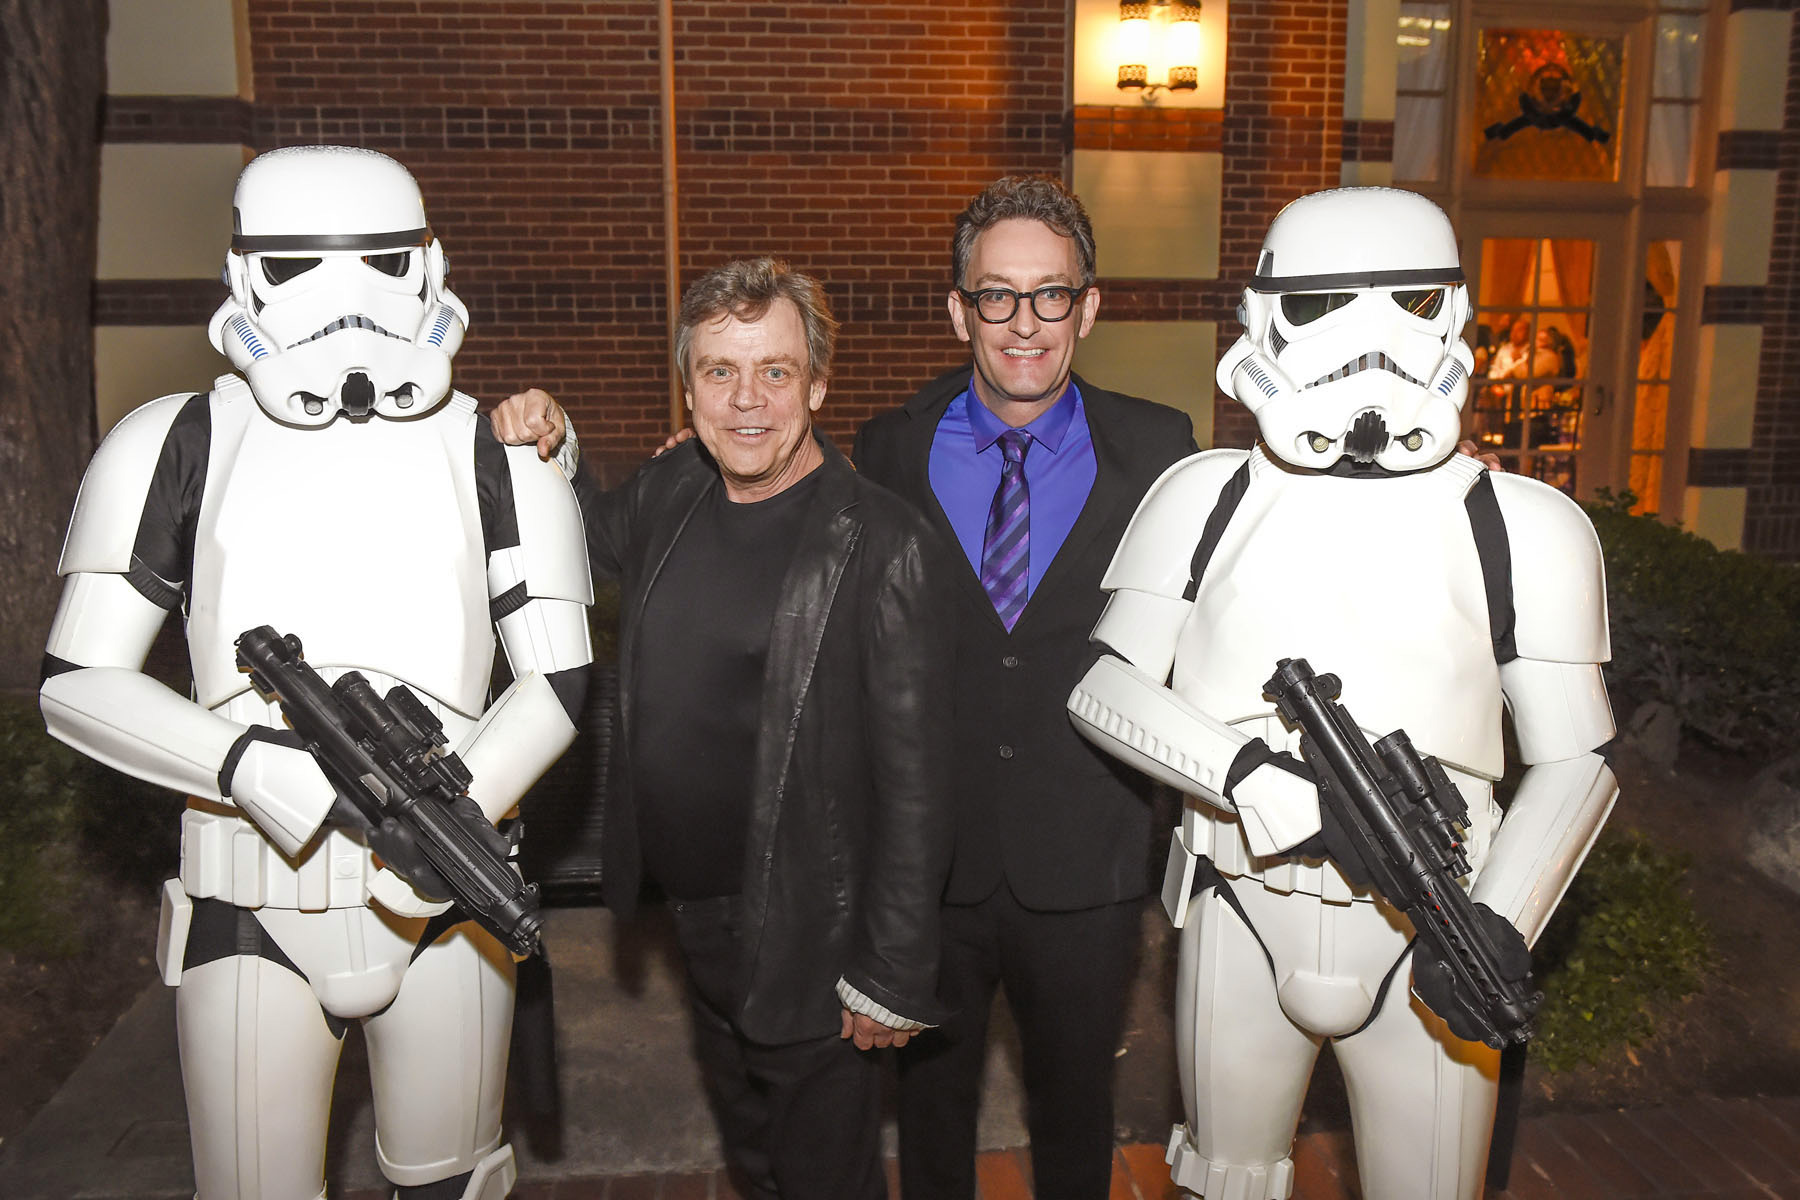 Storm troopers with Mark Hamill and